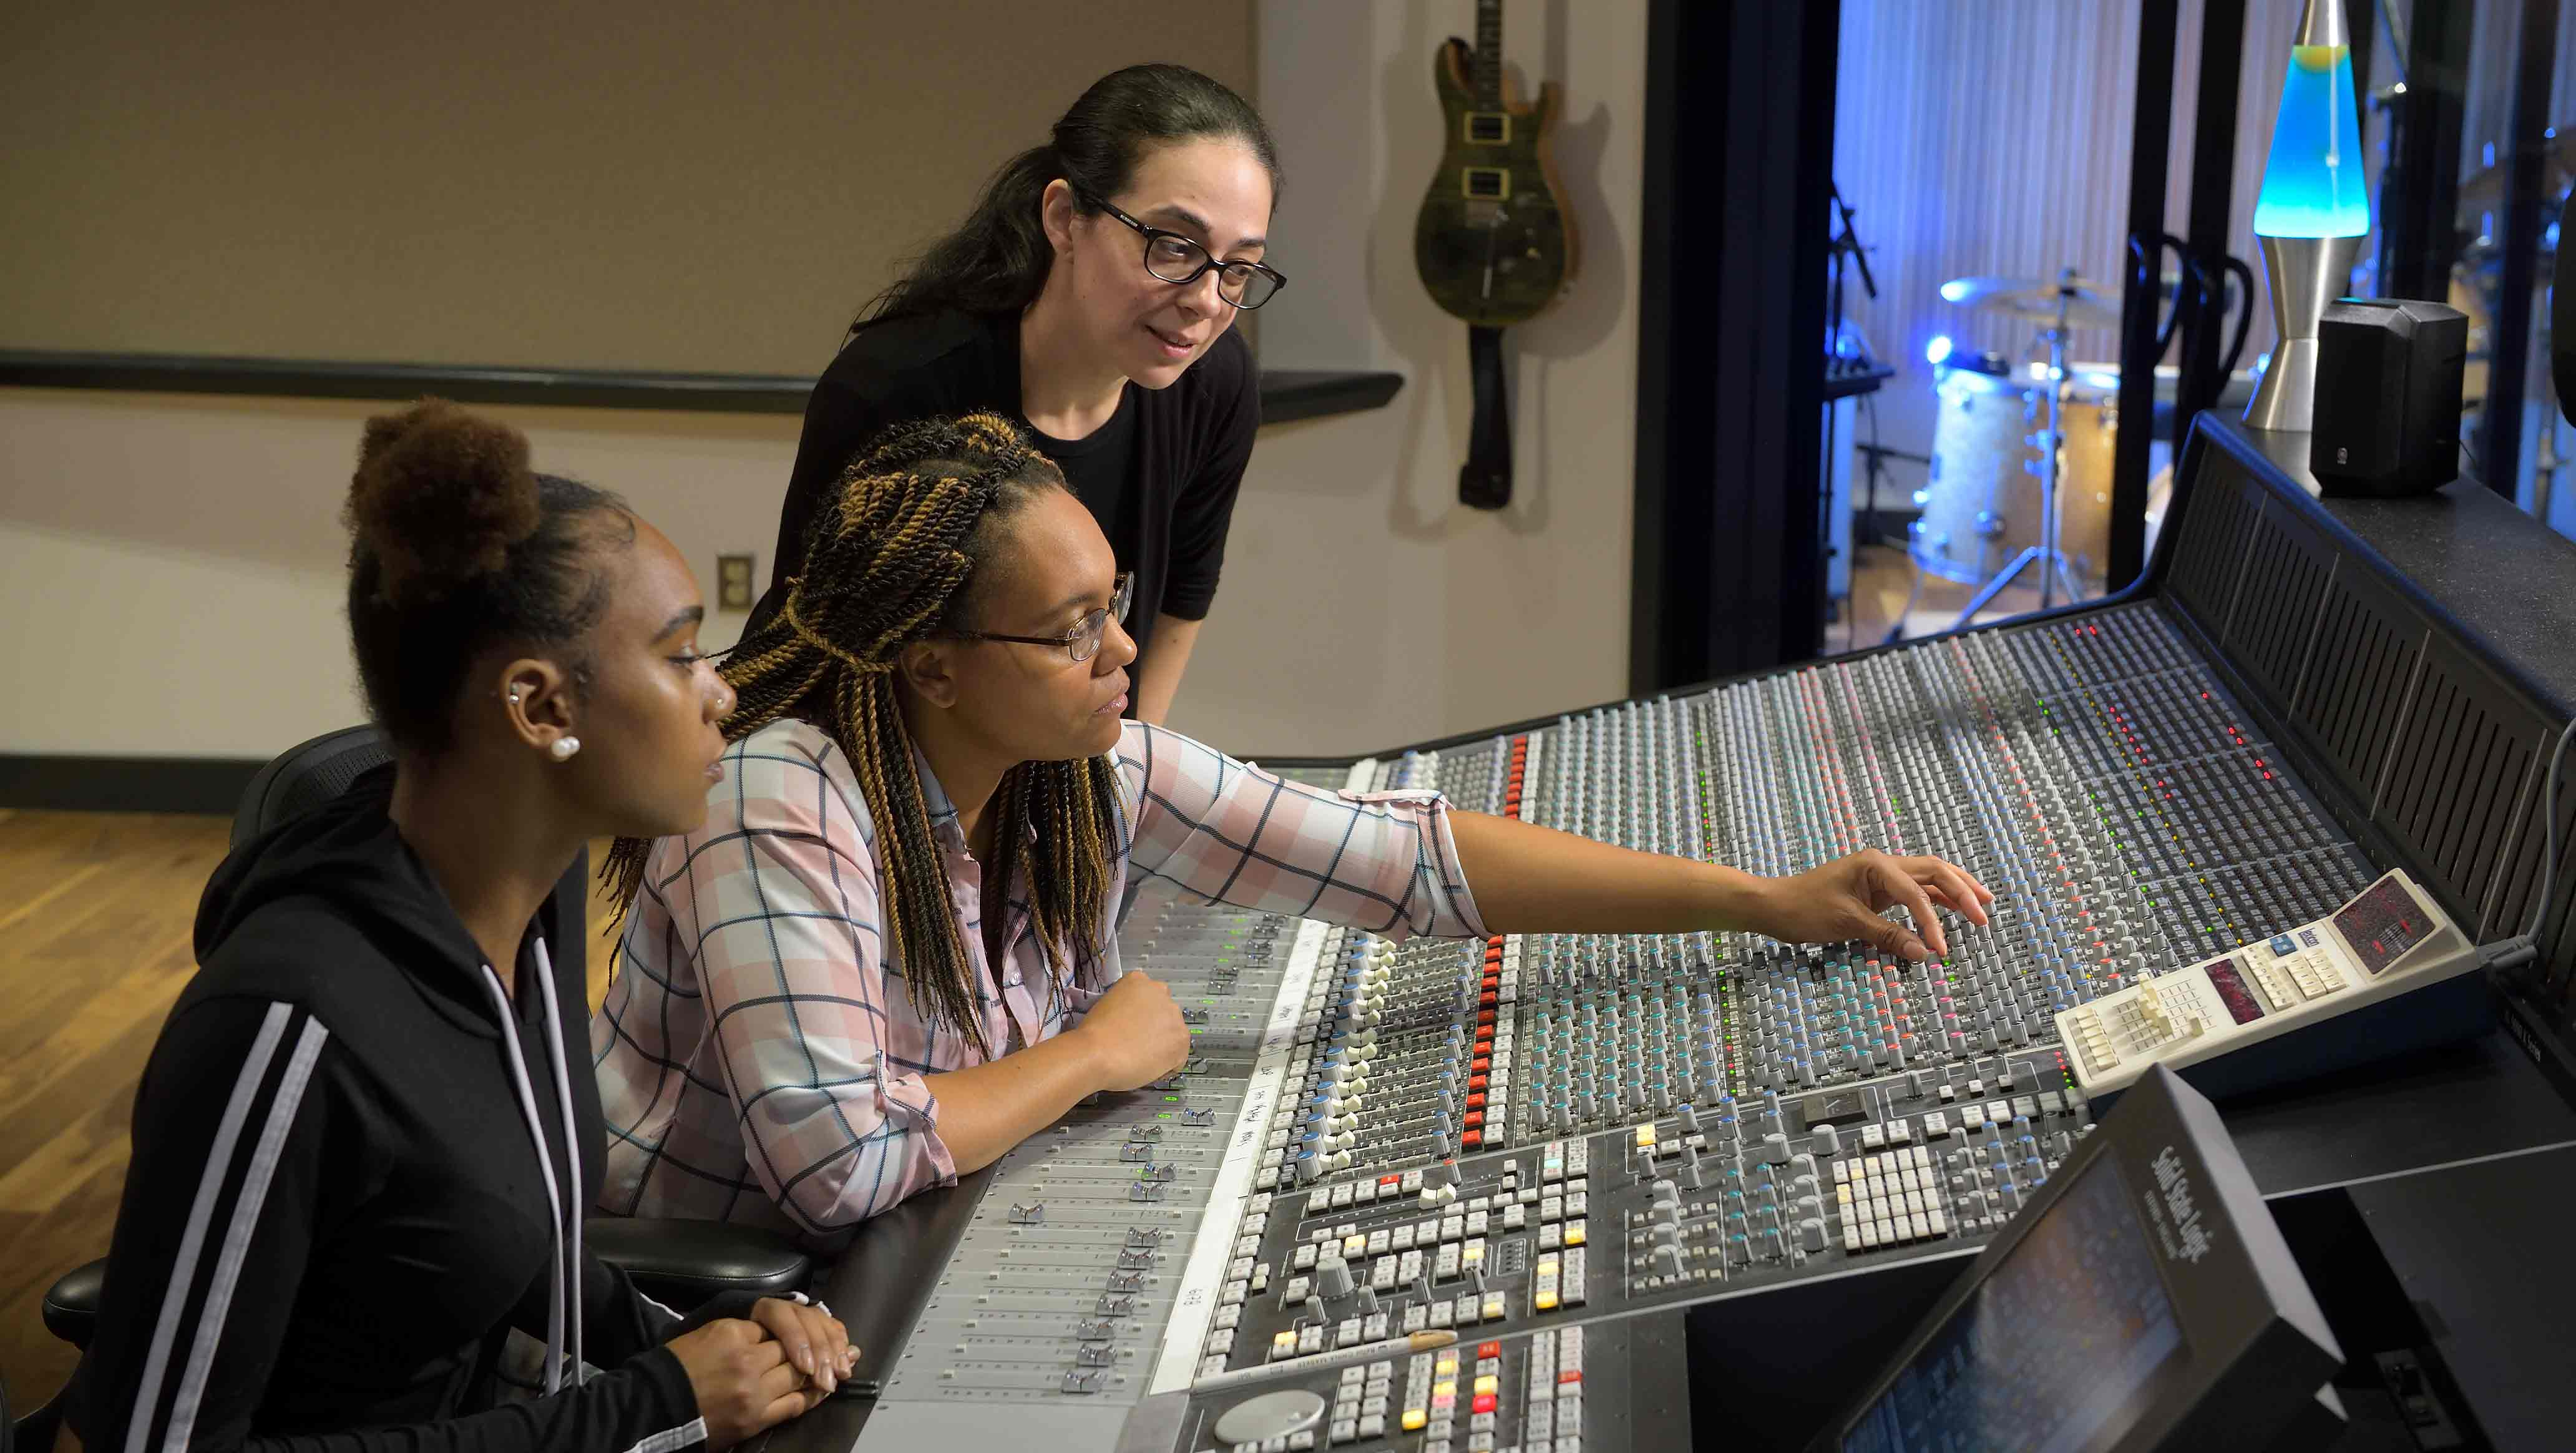 SRT Instructor Jen Mitlas working with students Shea Walker and her daughter Sasha Walker in Montco's new mixing suite. Photo by David DeBalko